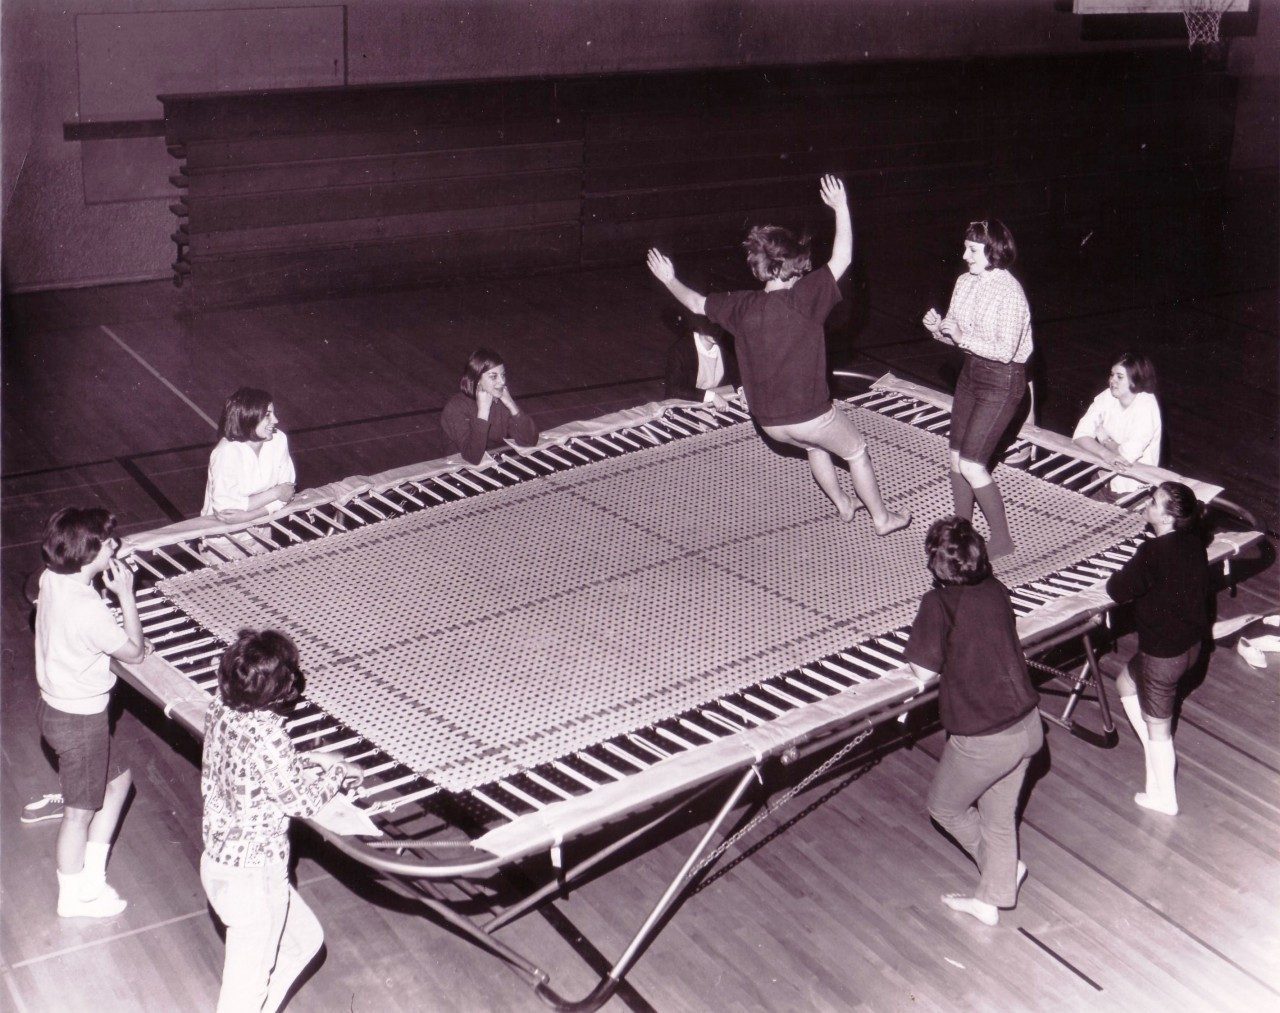 Women on trampoline in Howard Hall, 1965 (University Archives photo, click to enlarge)